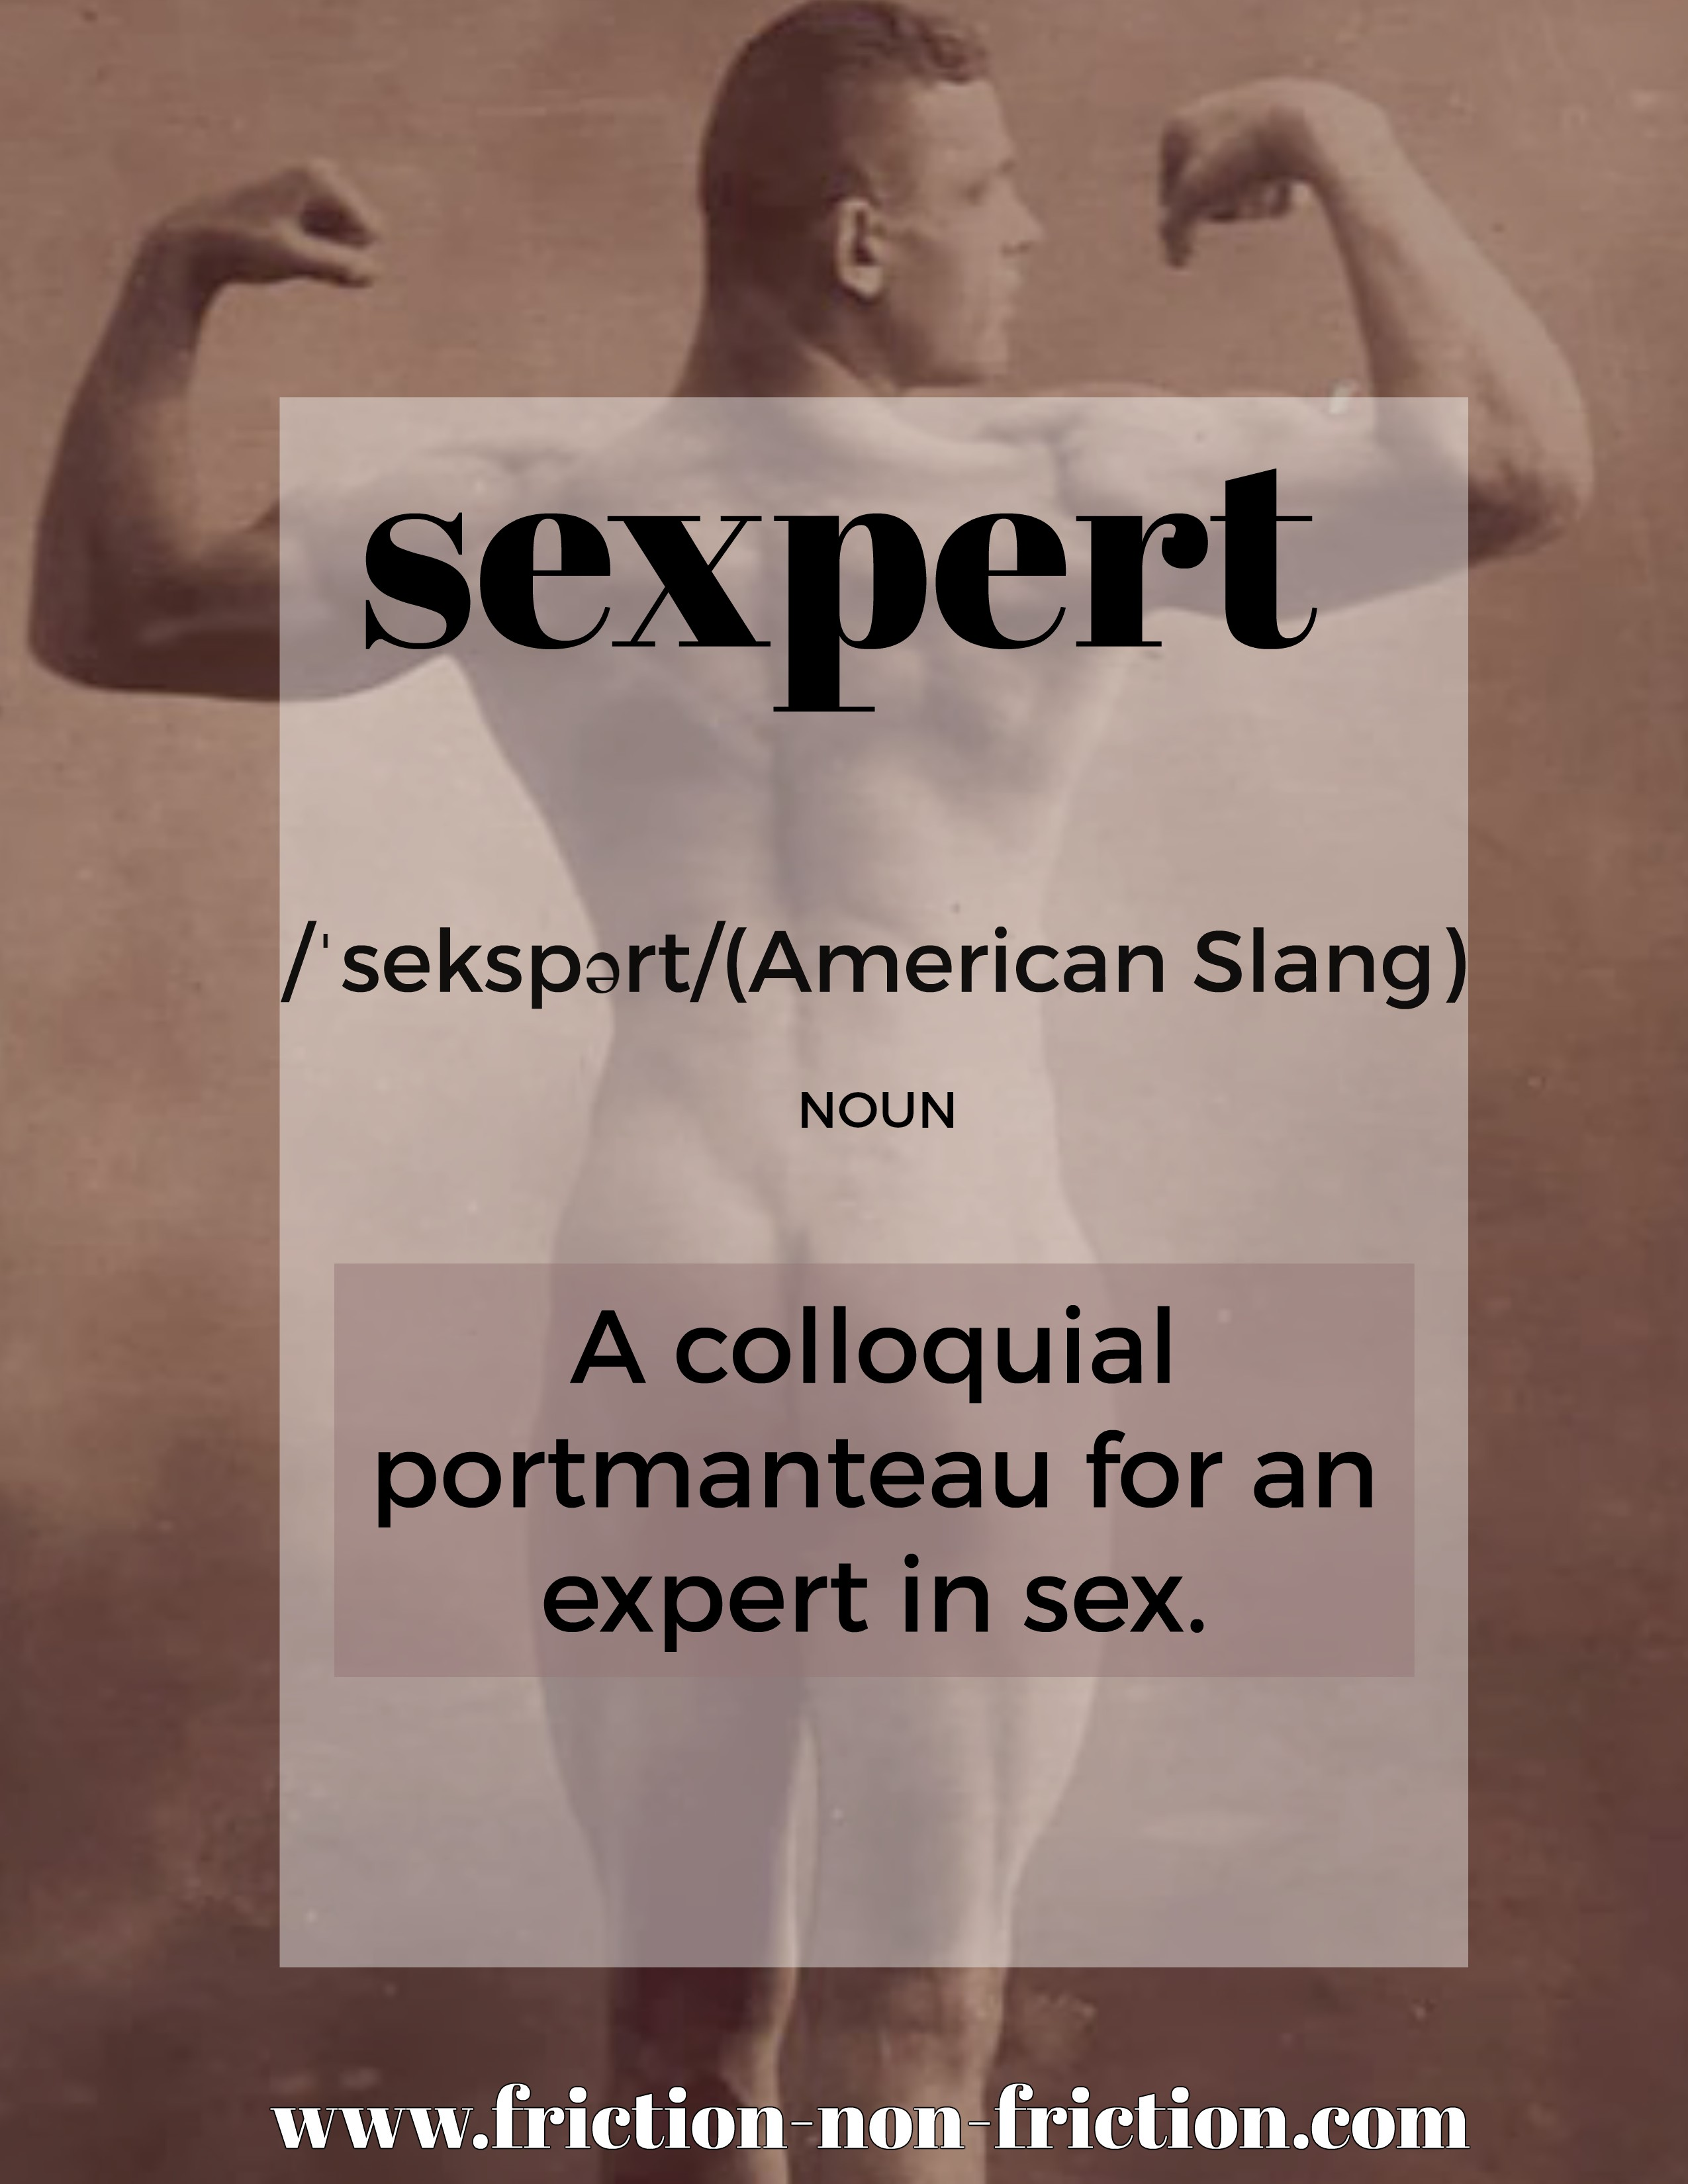 Sexpert -- another great FRICTIONARY definition from Friction non Friction